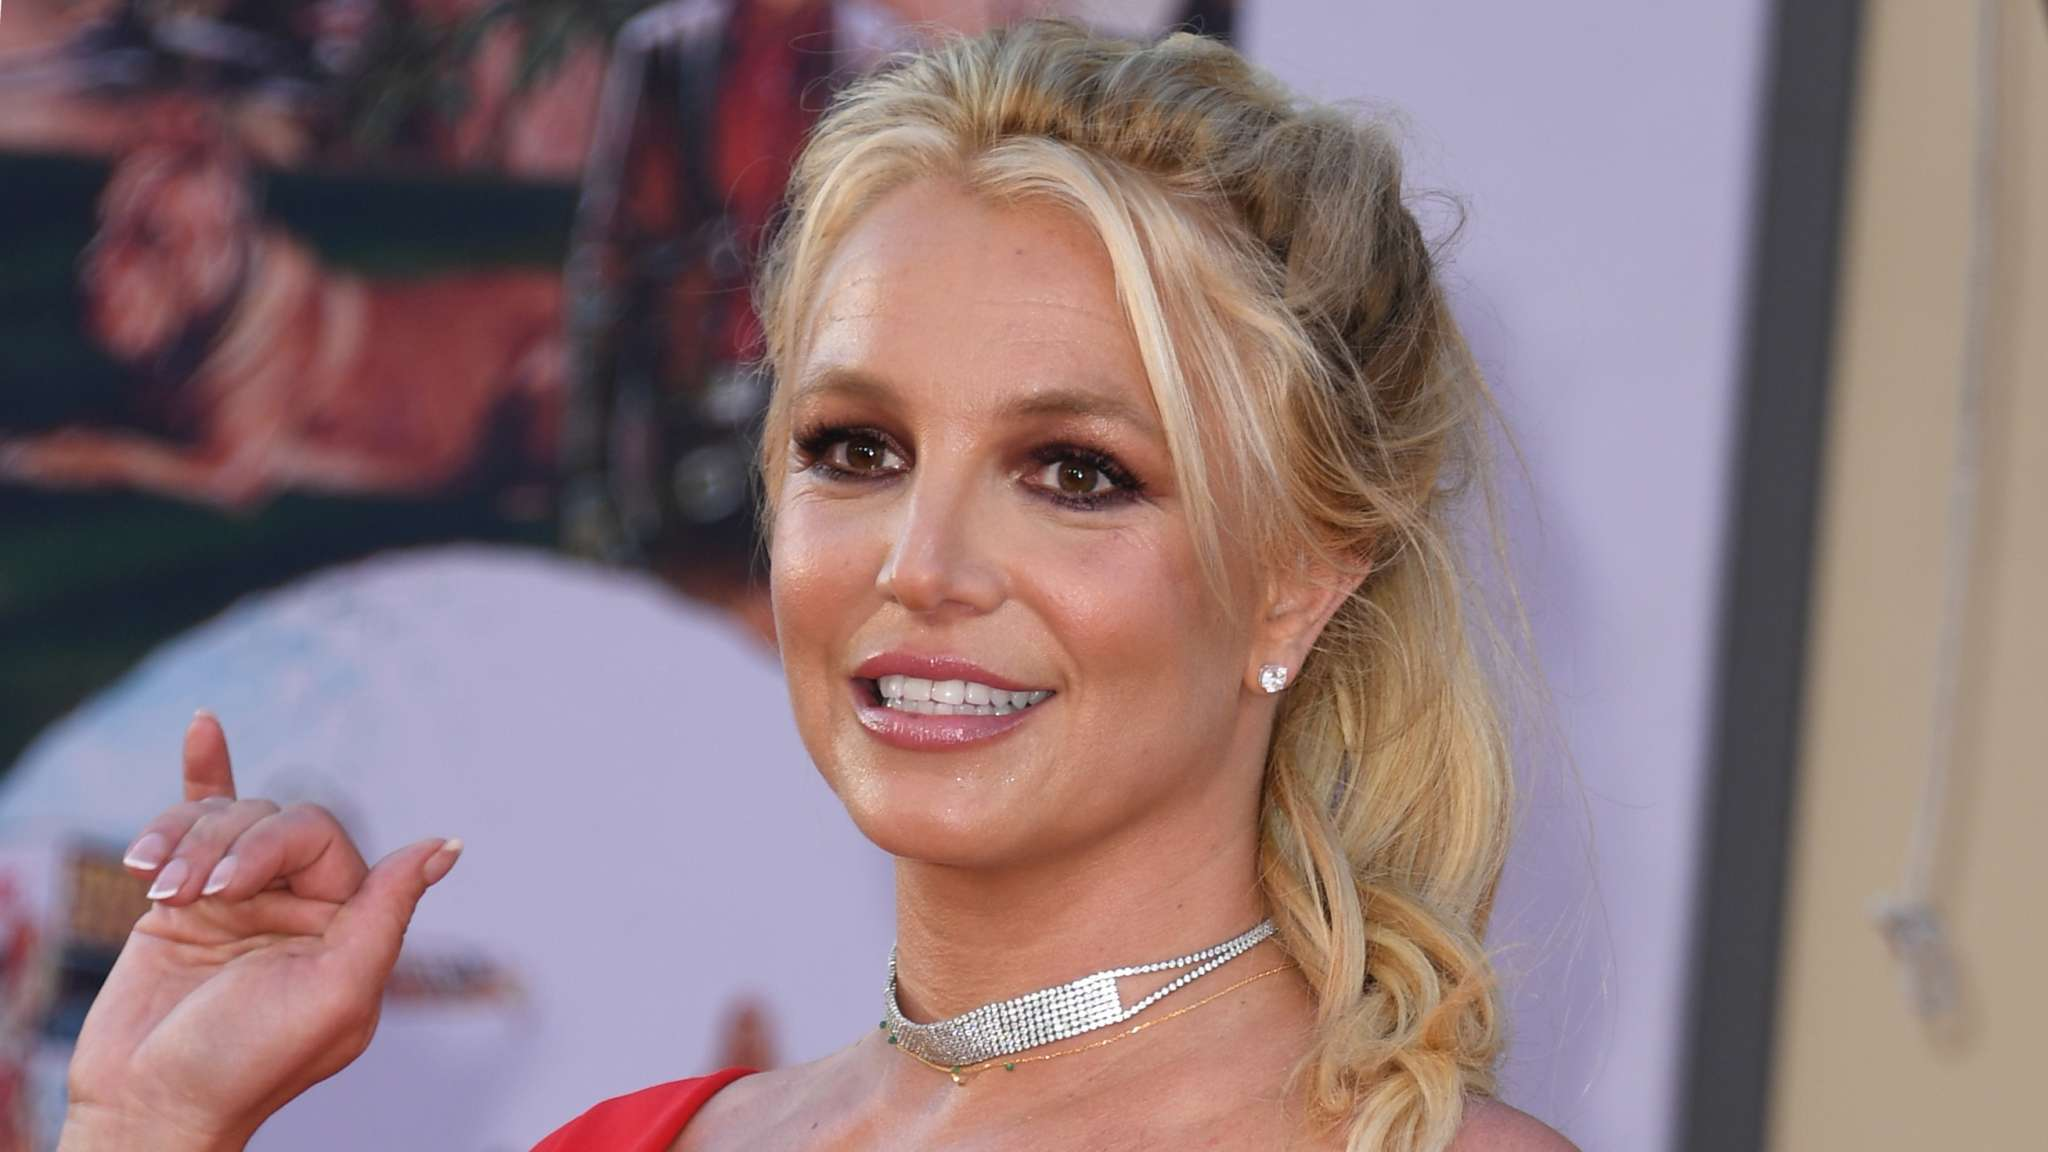 """""""britney-spears-called-the-police-and-reported-herself-as-a-victim-of-abuse-the-night-before-her-public-testimony-source-says"""""""